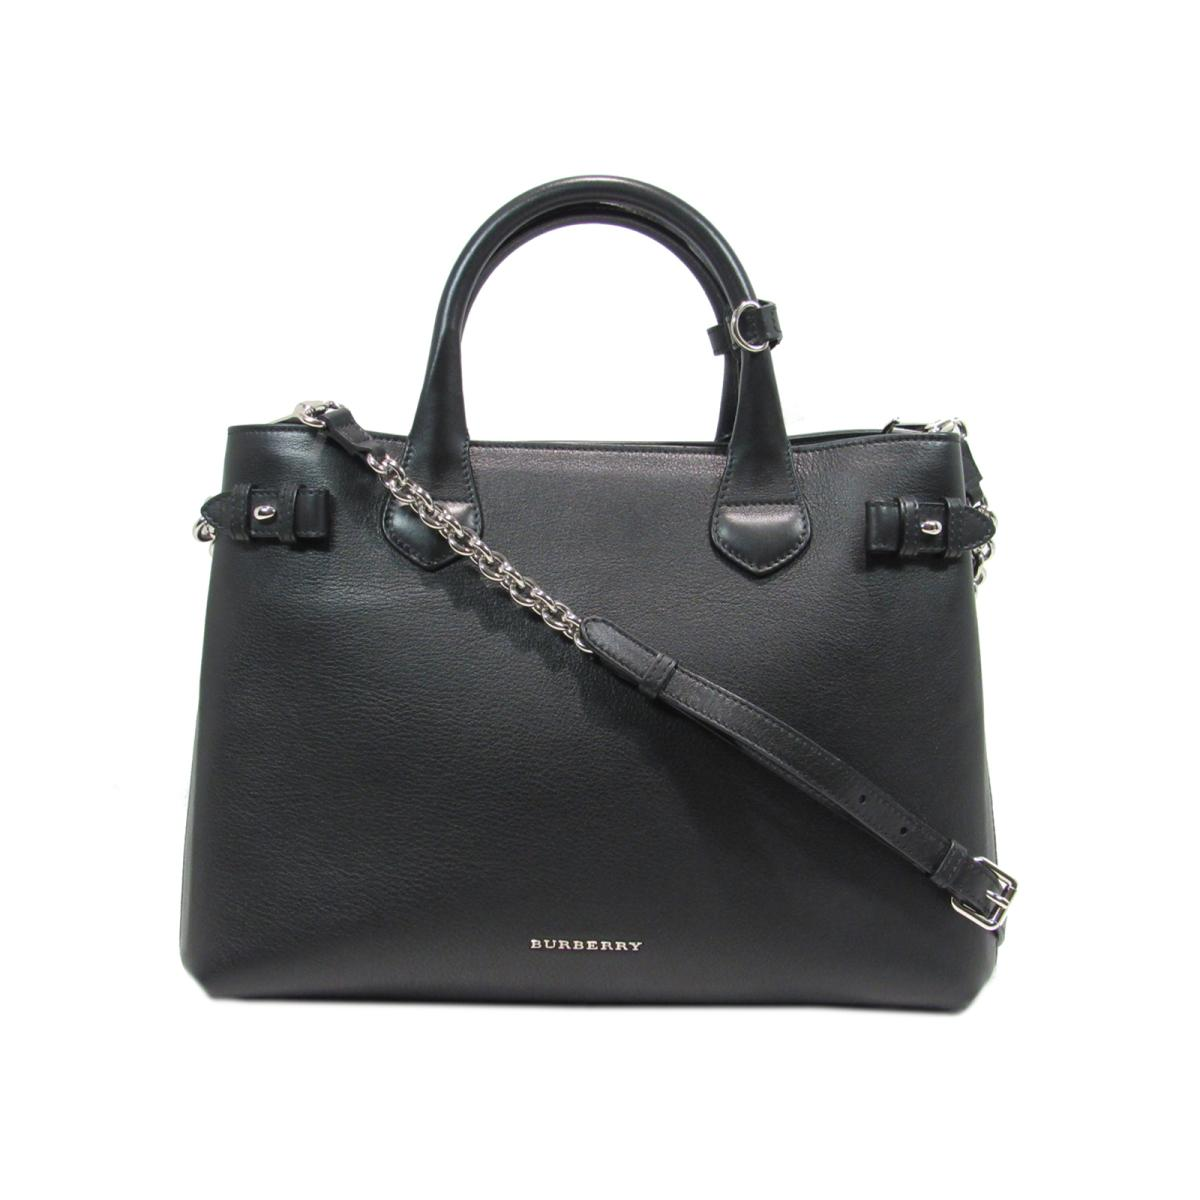 2926e20f2e96 BRANDOFF  Authentic BURBERRY 2way tote Bag leather Black